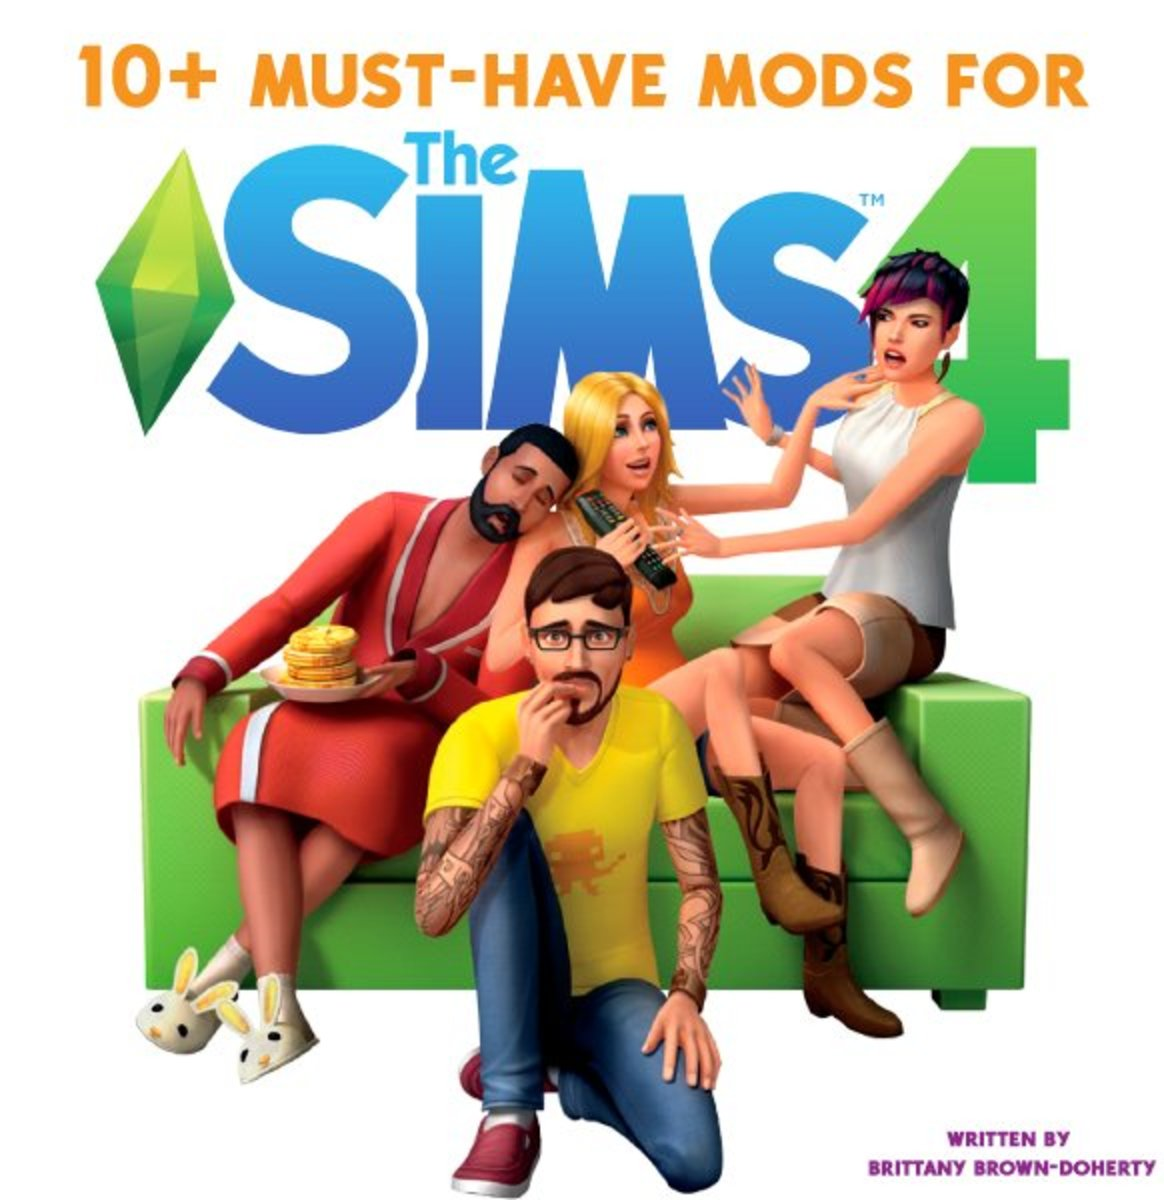 10+ Must-Have Mods for the Sims 4